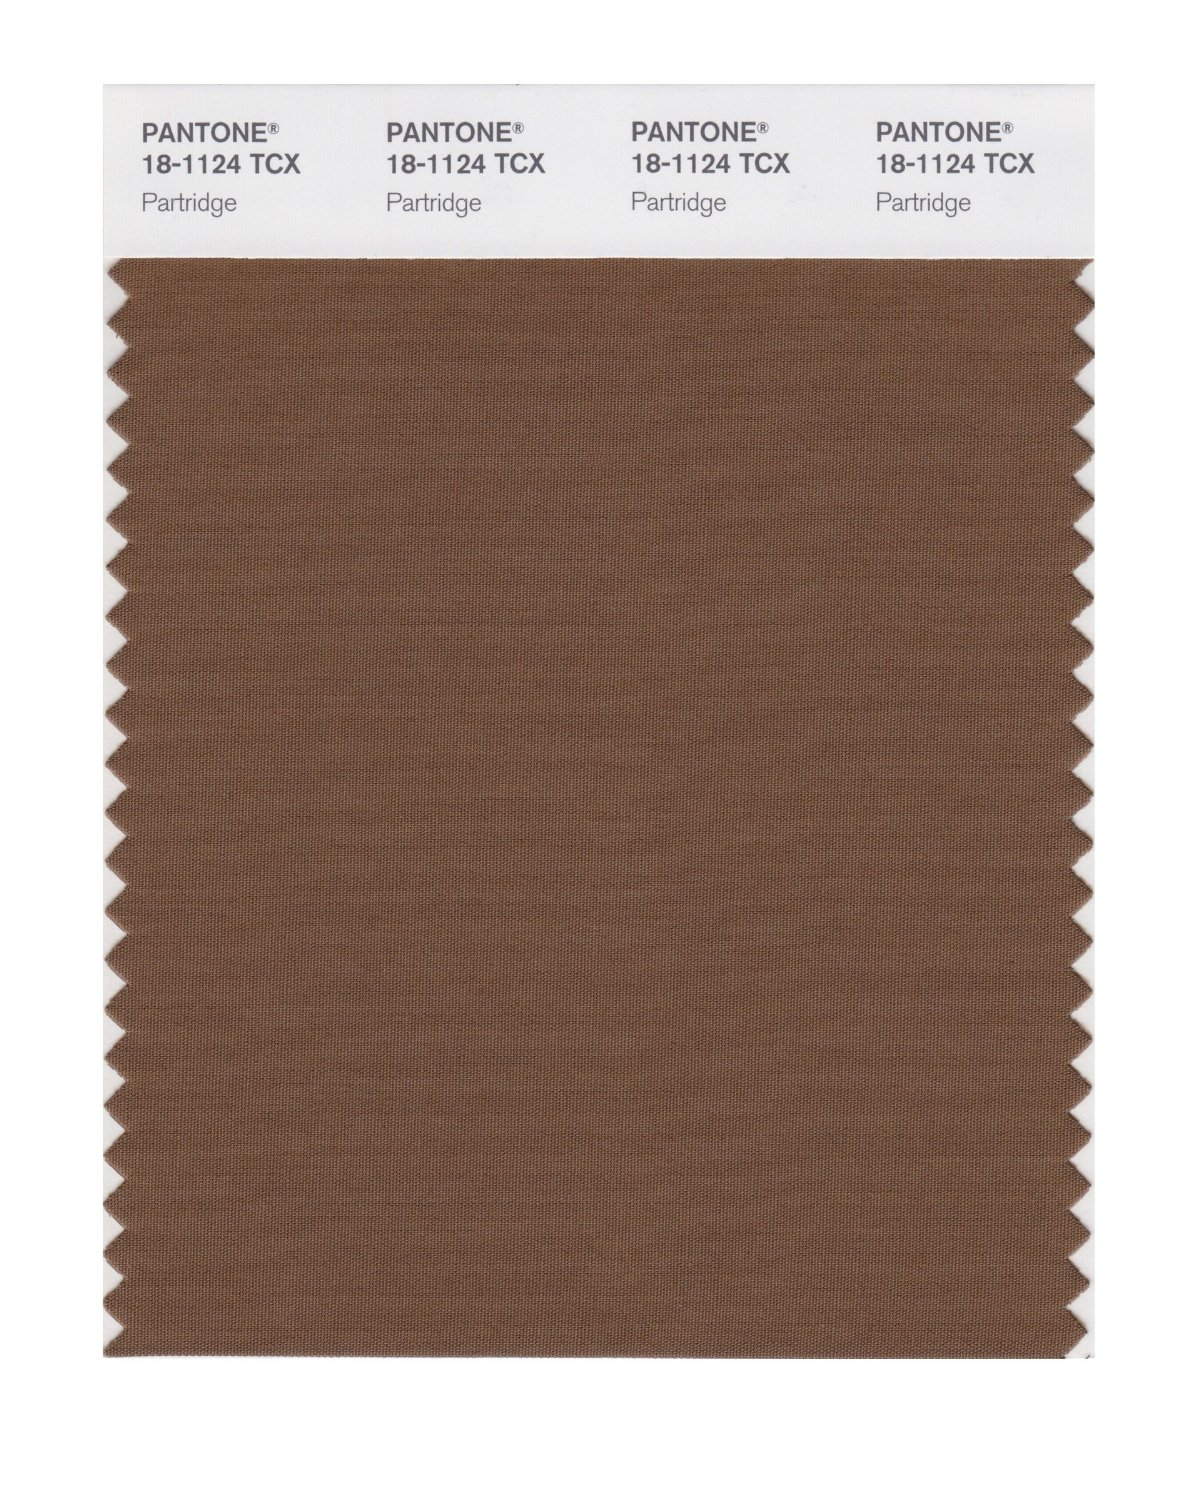 Pantone Smart Swatch 18-1124 Partridge